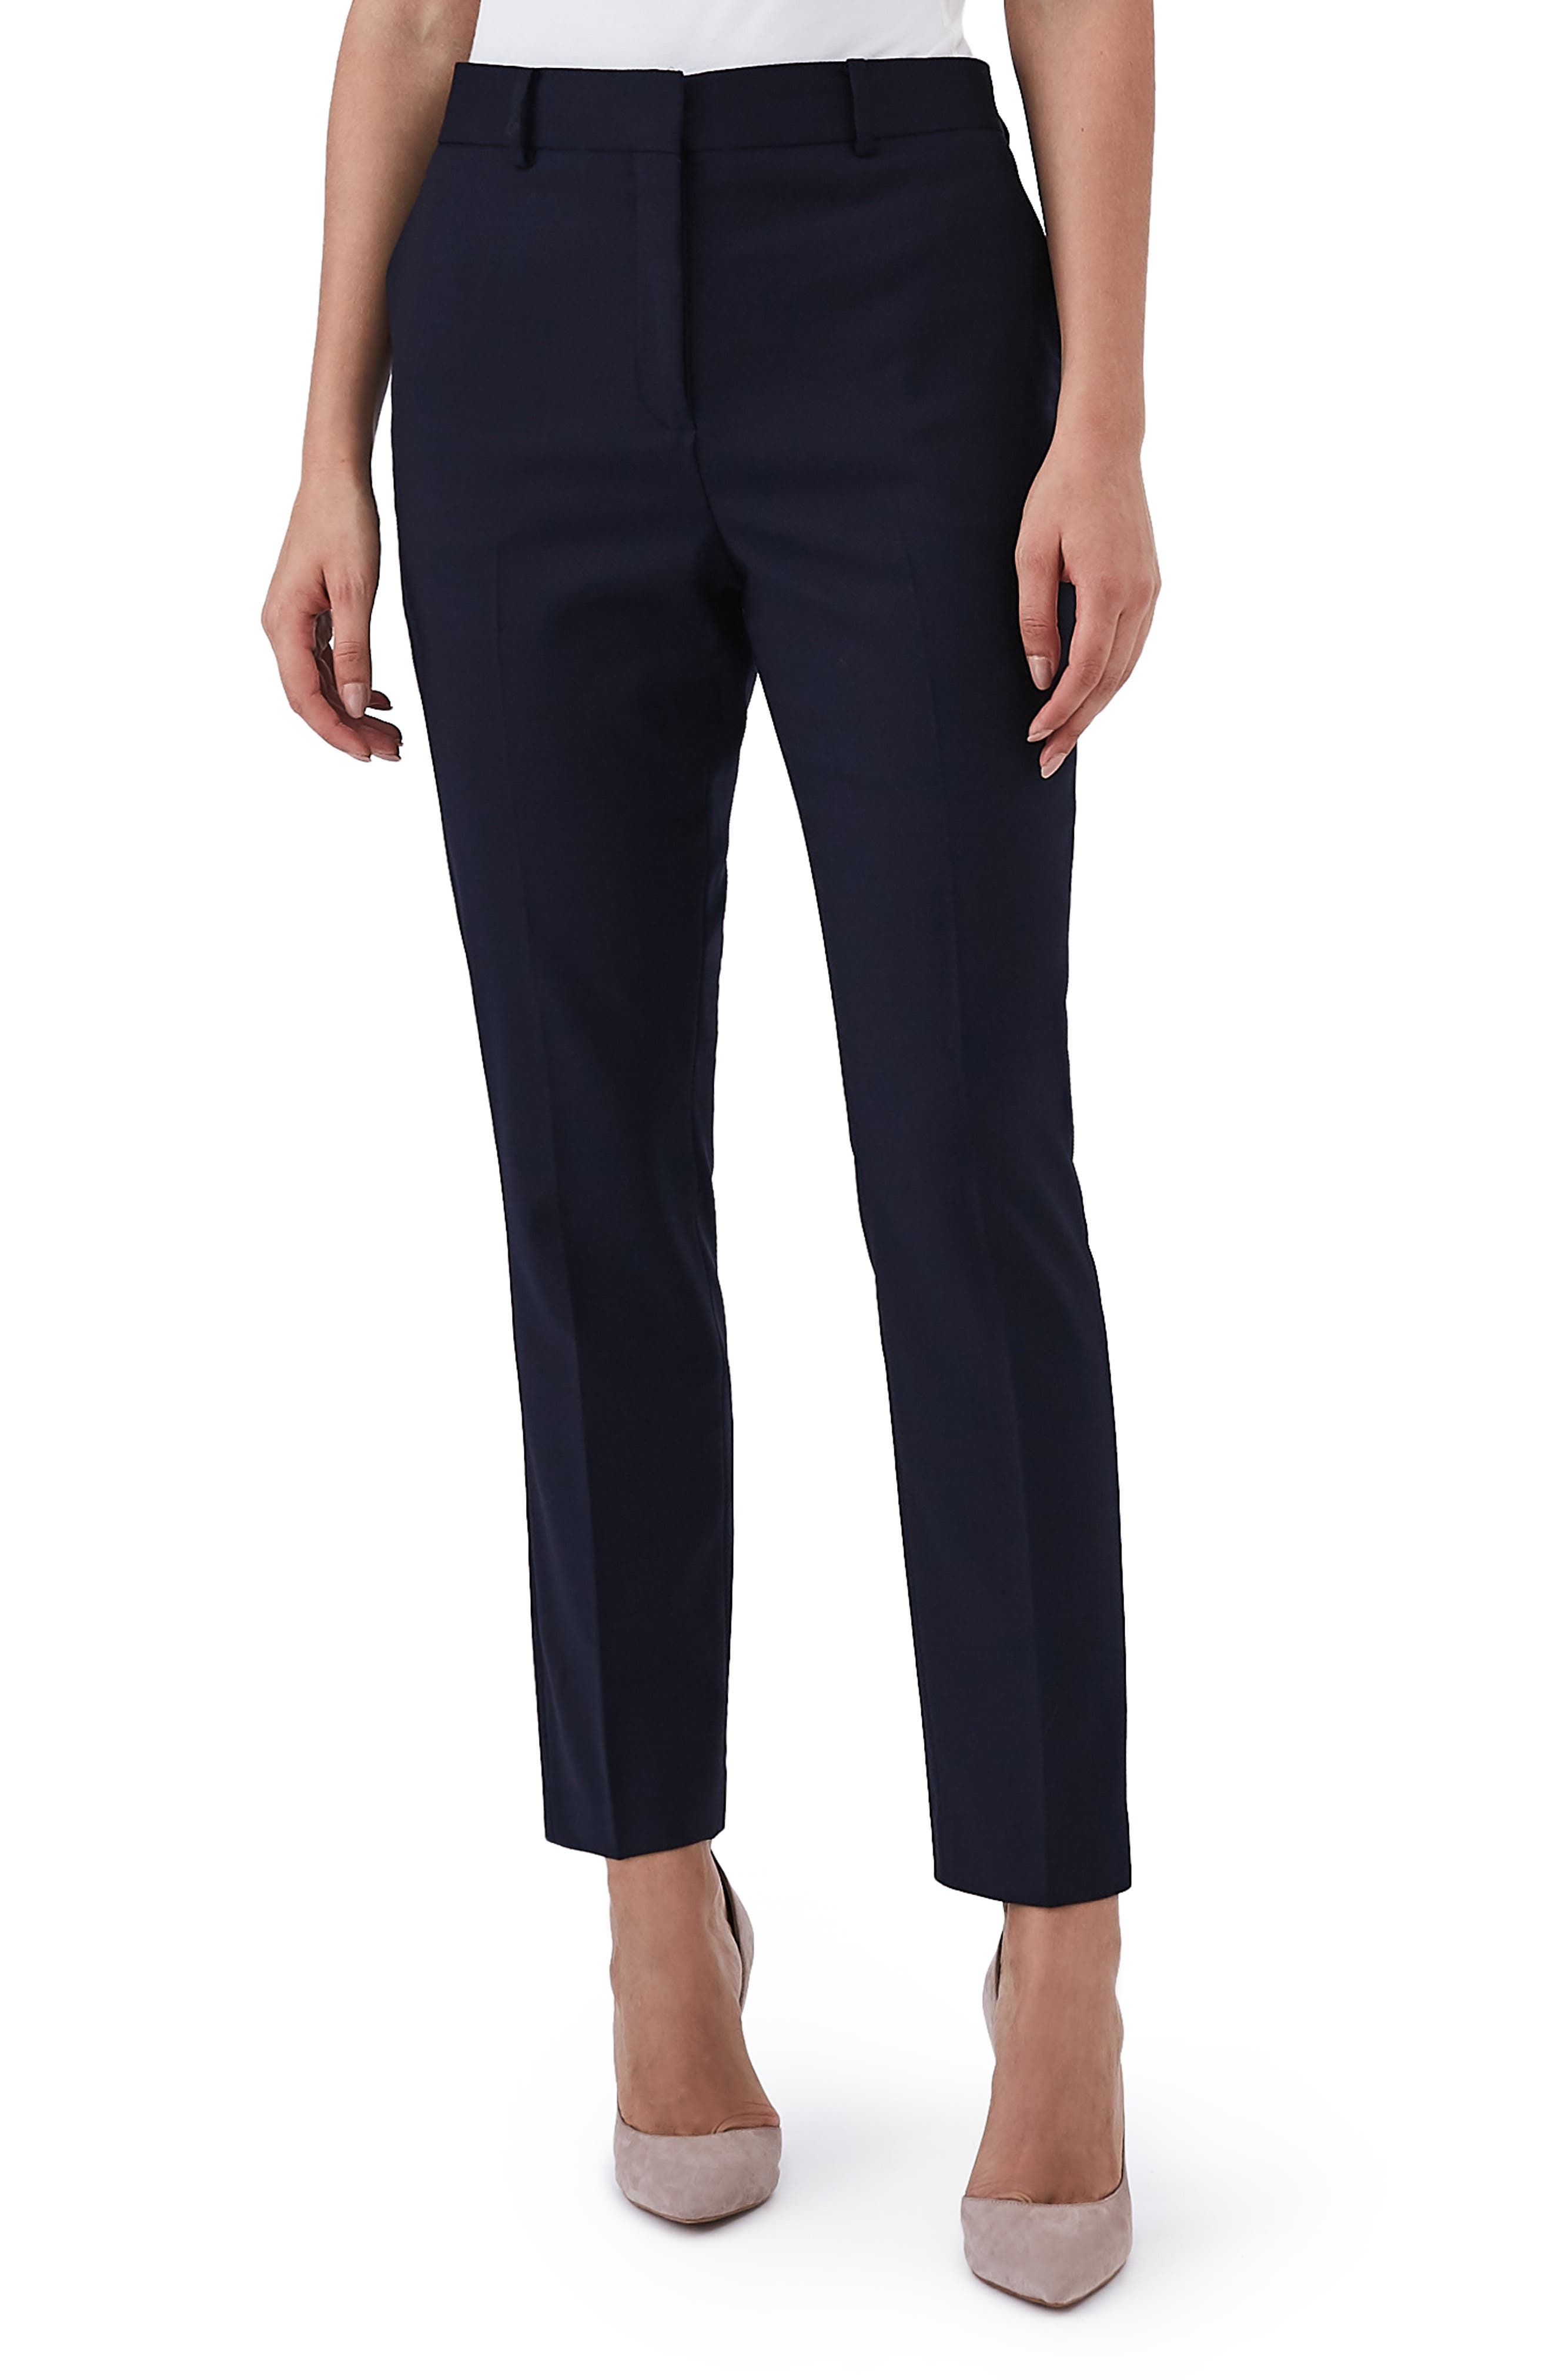 REISS Harper Stretch Wool Blend Pants in Black